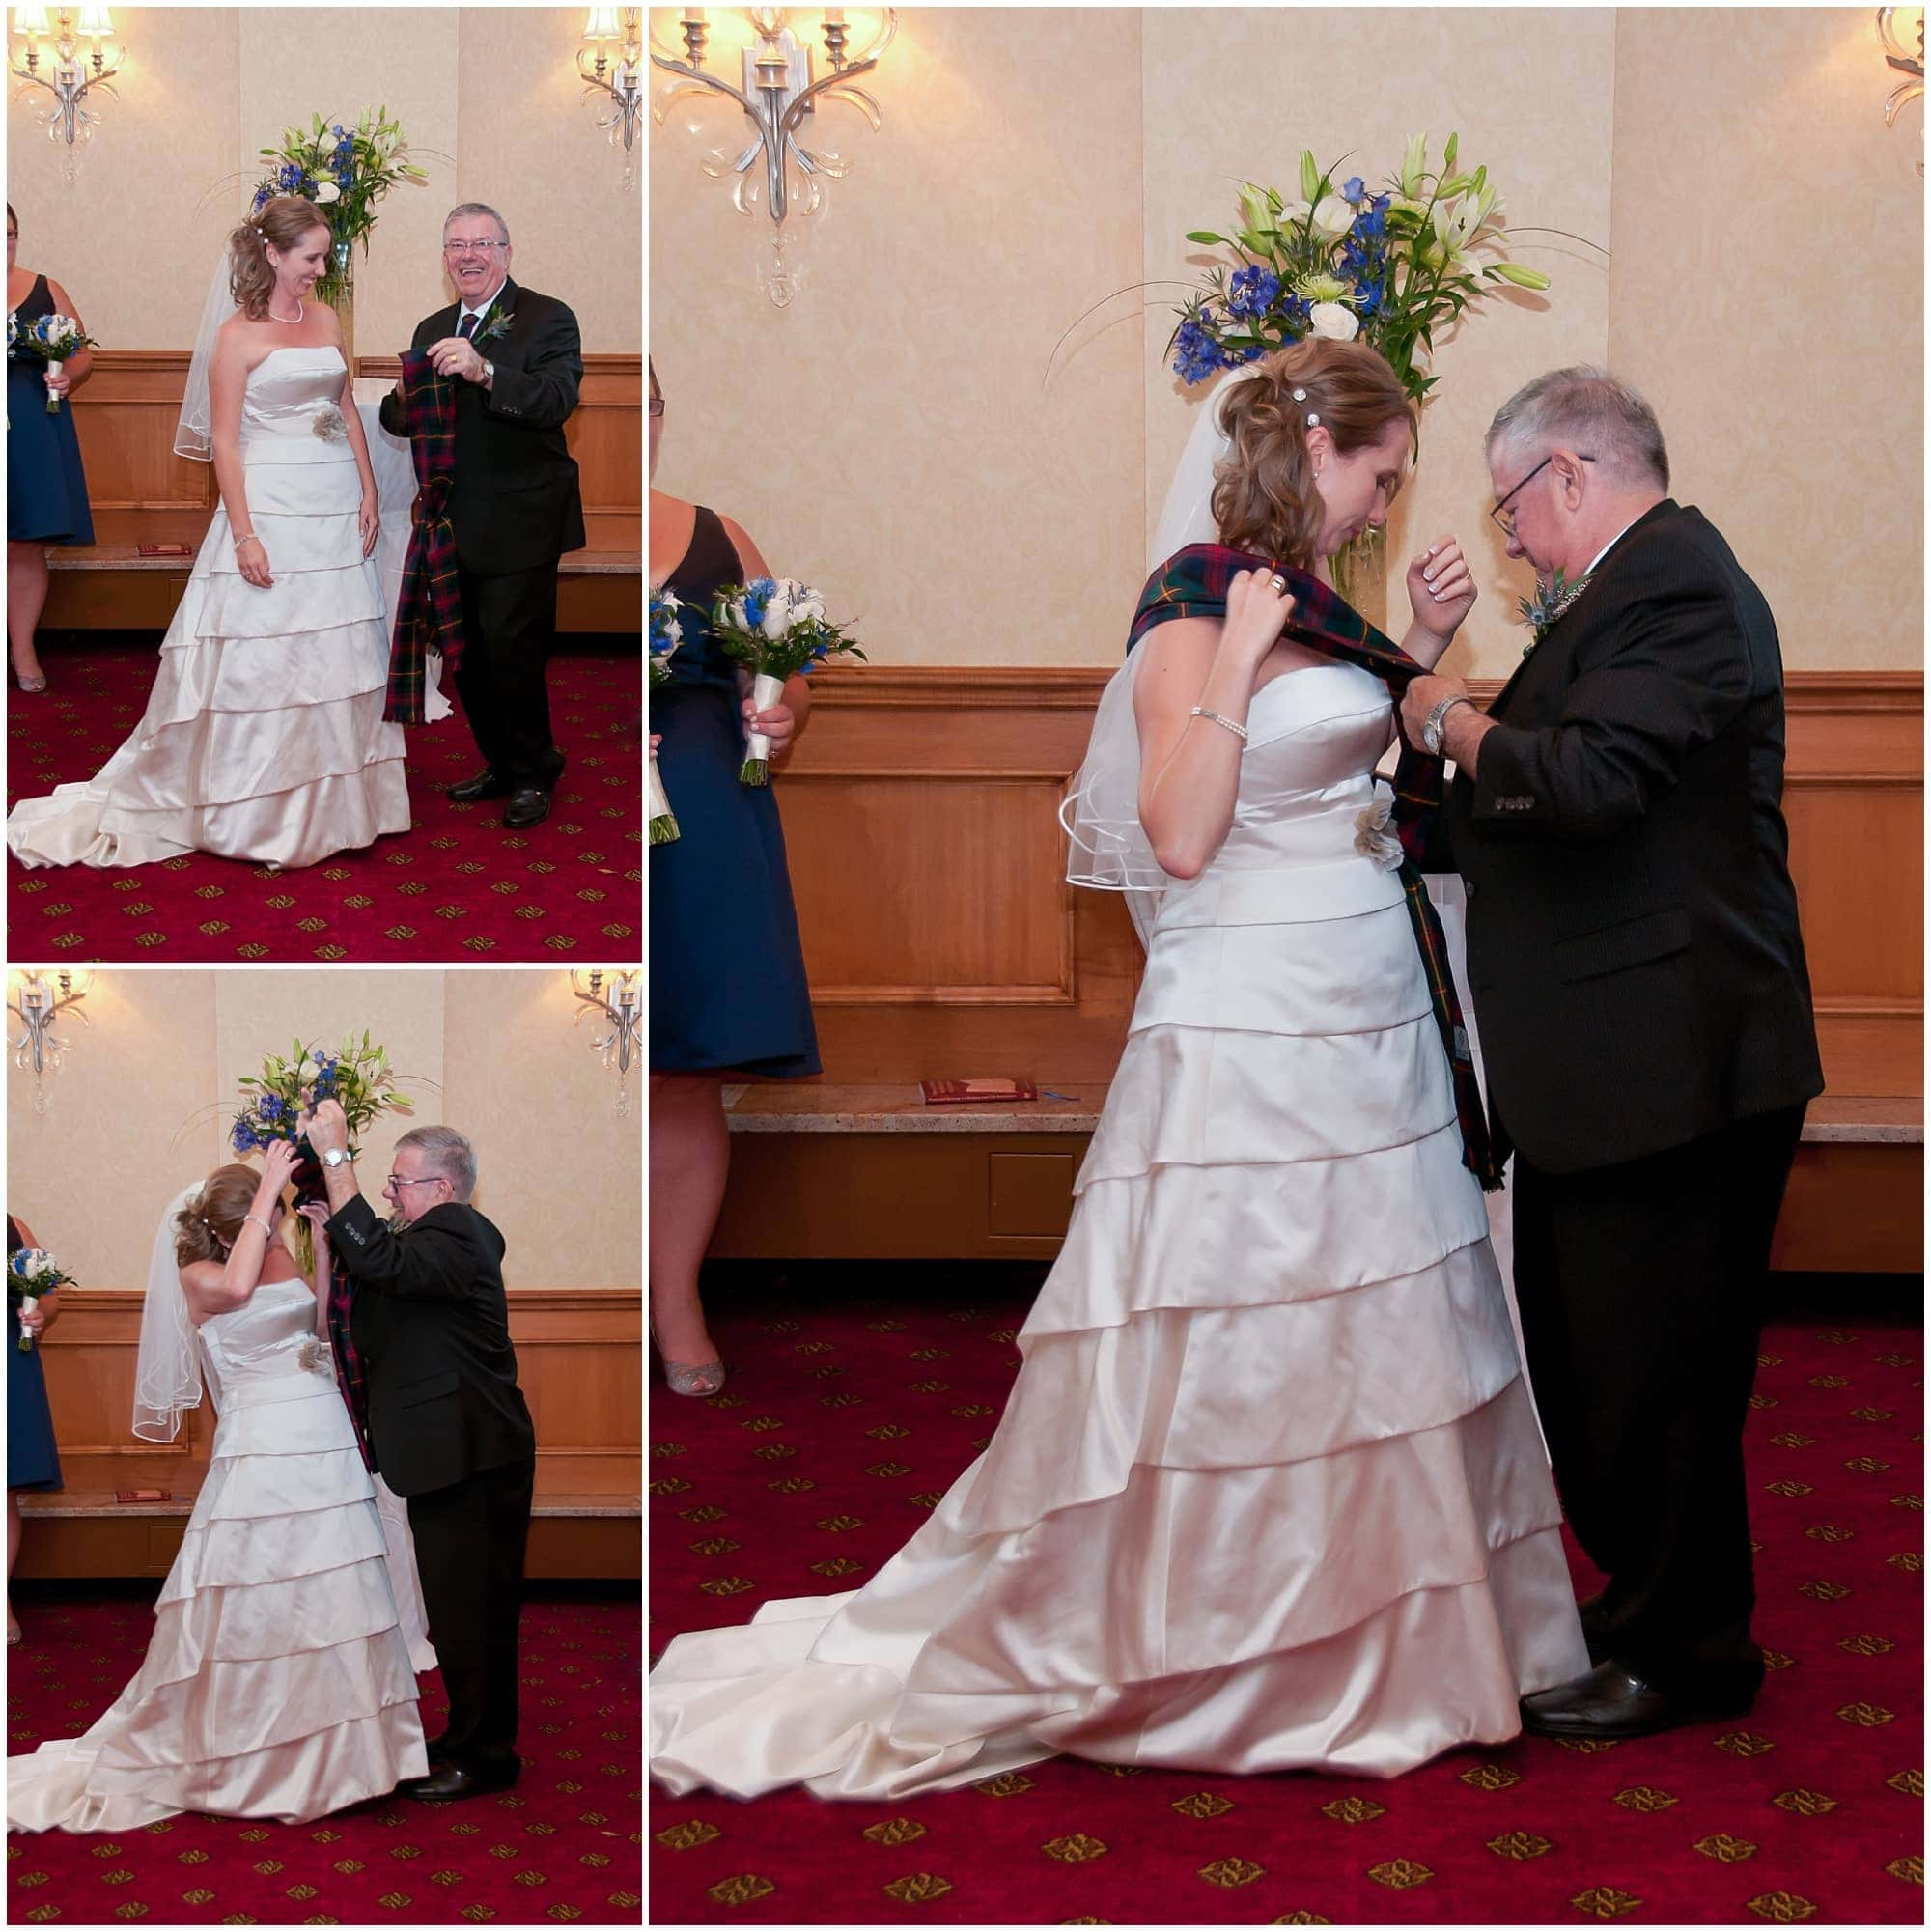 The father of the groom pinning the tartan sash on the bride's wedding dress at the Halifax Marriott Harbourfront Hotel in Nova Scotia.